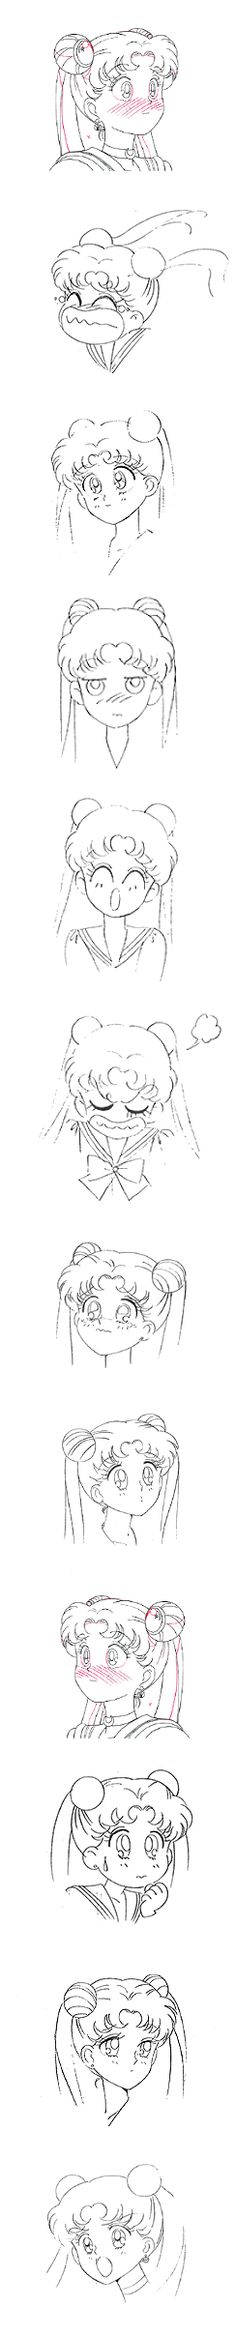 """""""Usagi Tsukino (Sailor Moon)"""" by 武内 直子 Naoko Takeuchi* 